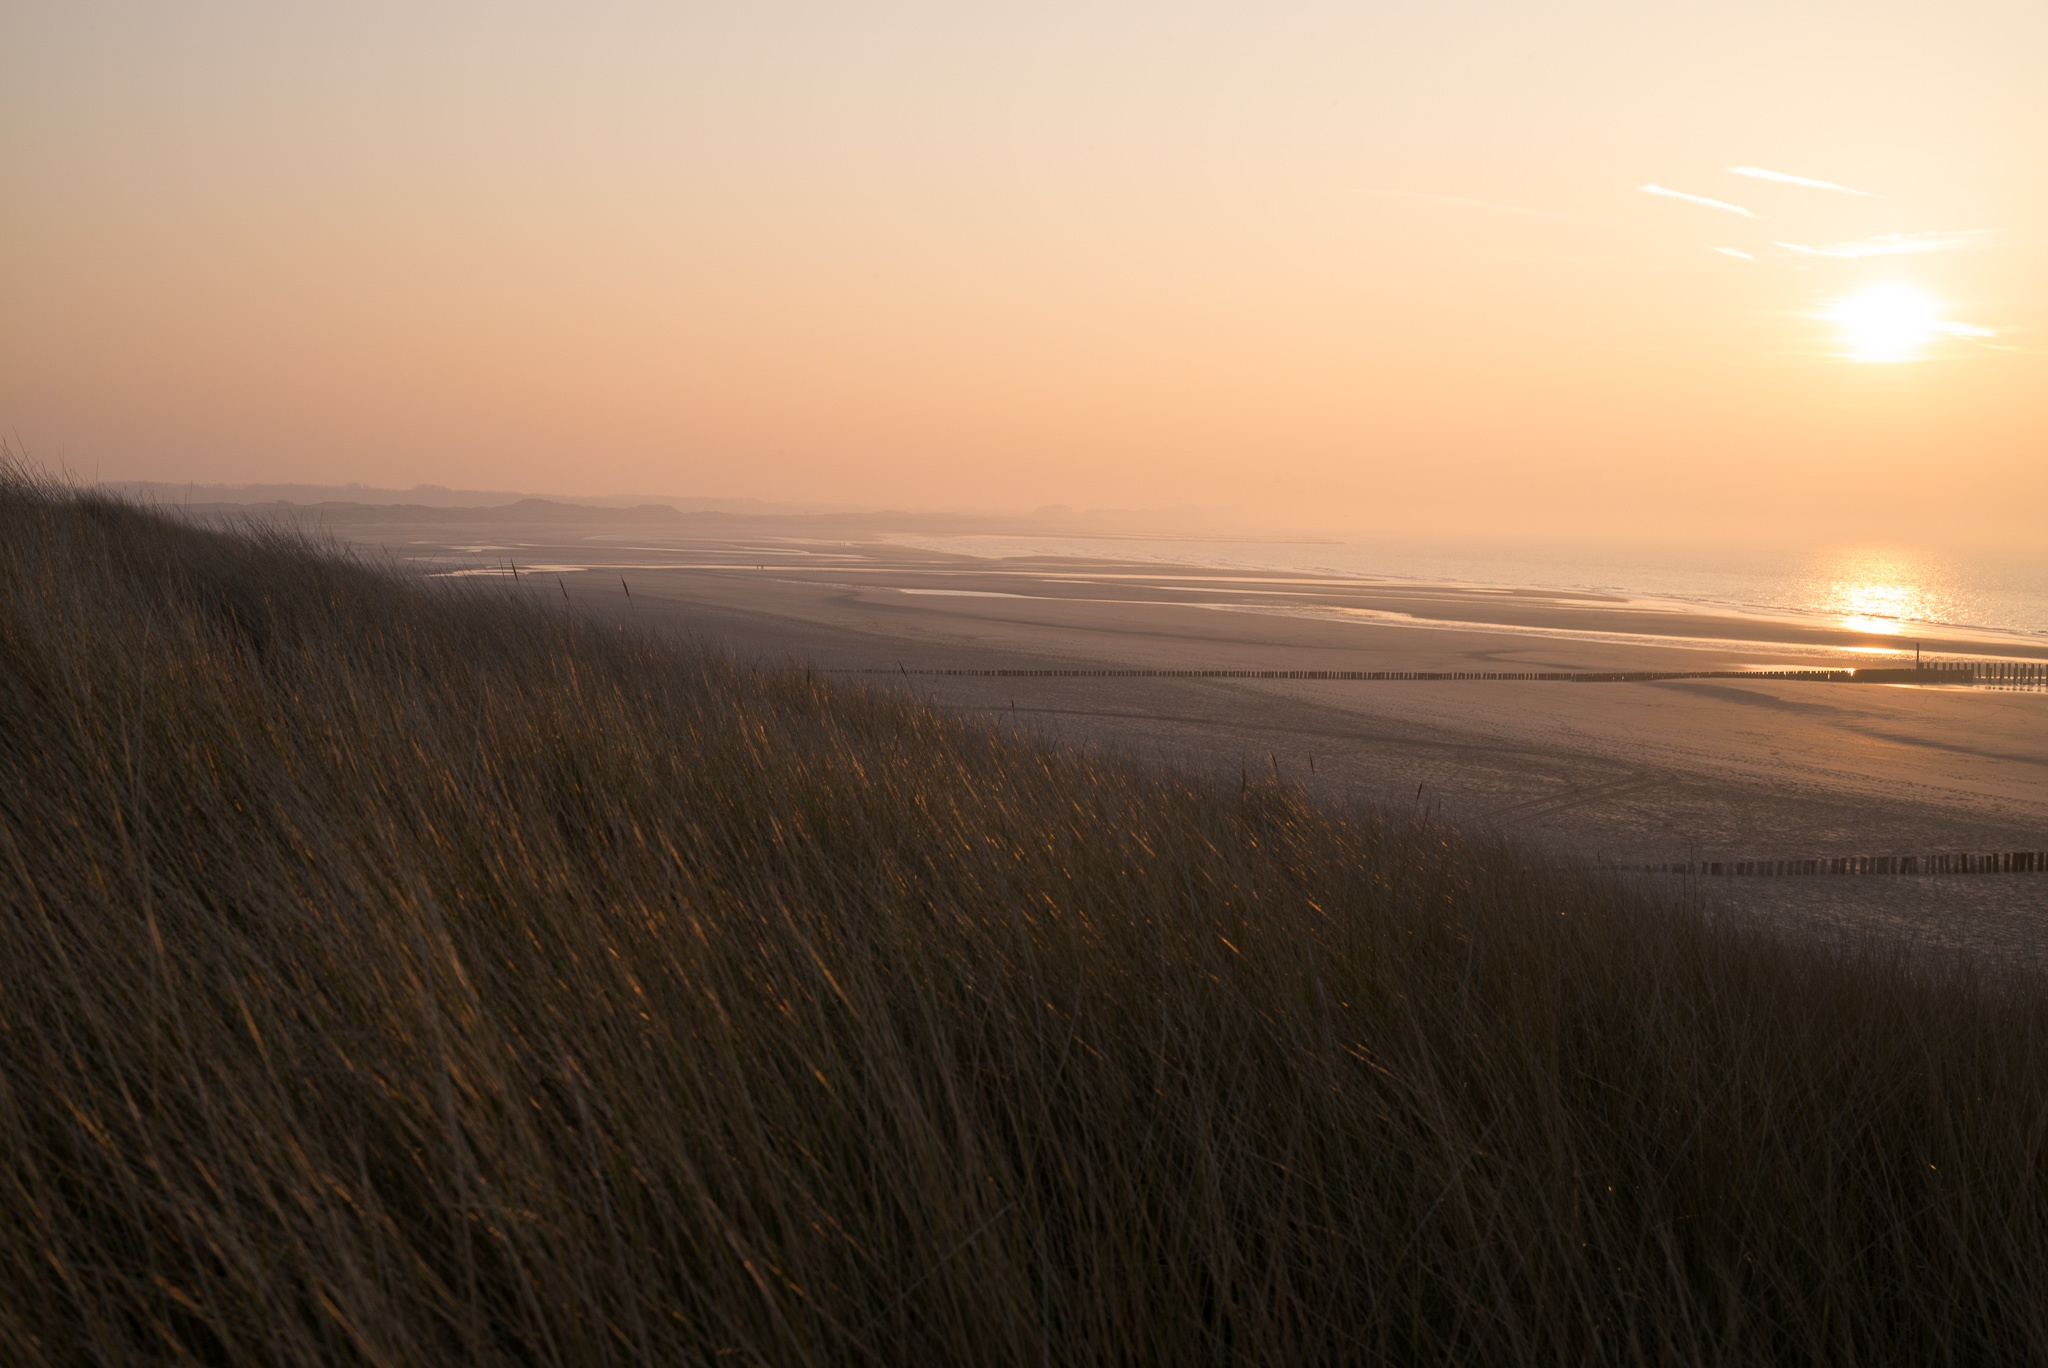 Cadzand-Bad view dunes sea beach netherlands dutch